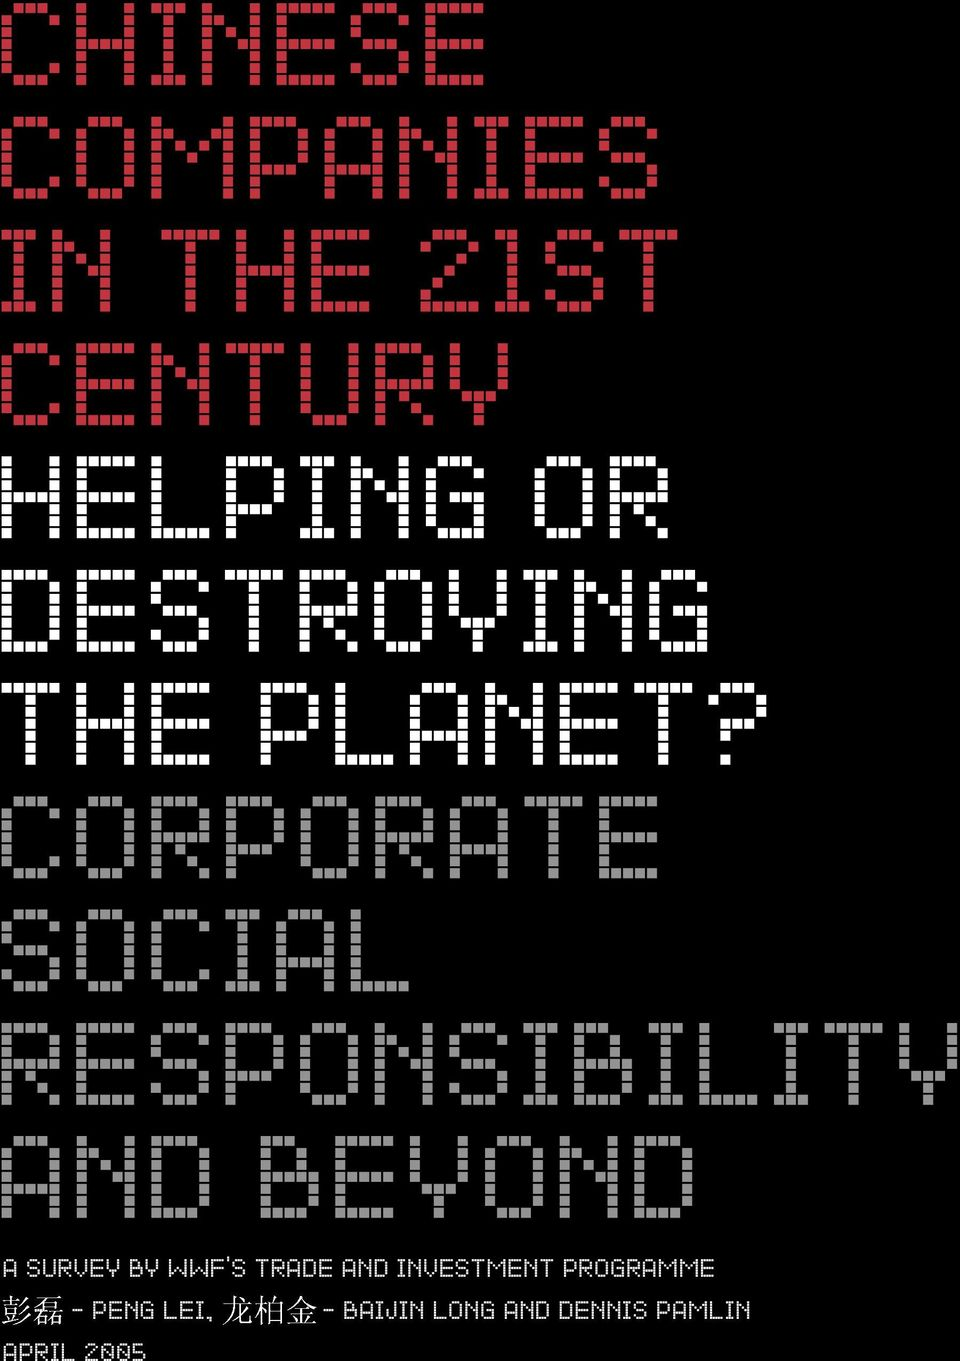 CORPORATE SOCIAL RESPONSIBILITY AND BEYOND A SURVEY BY WWF S